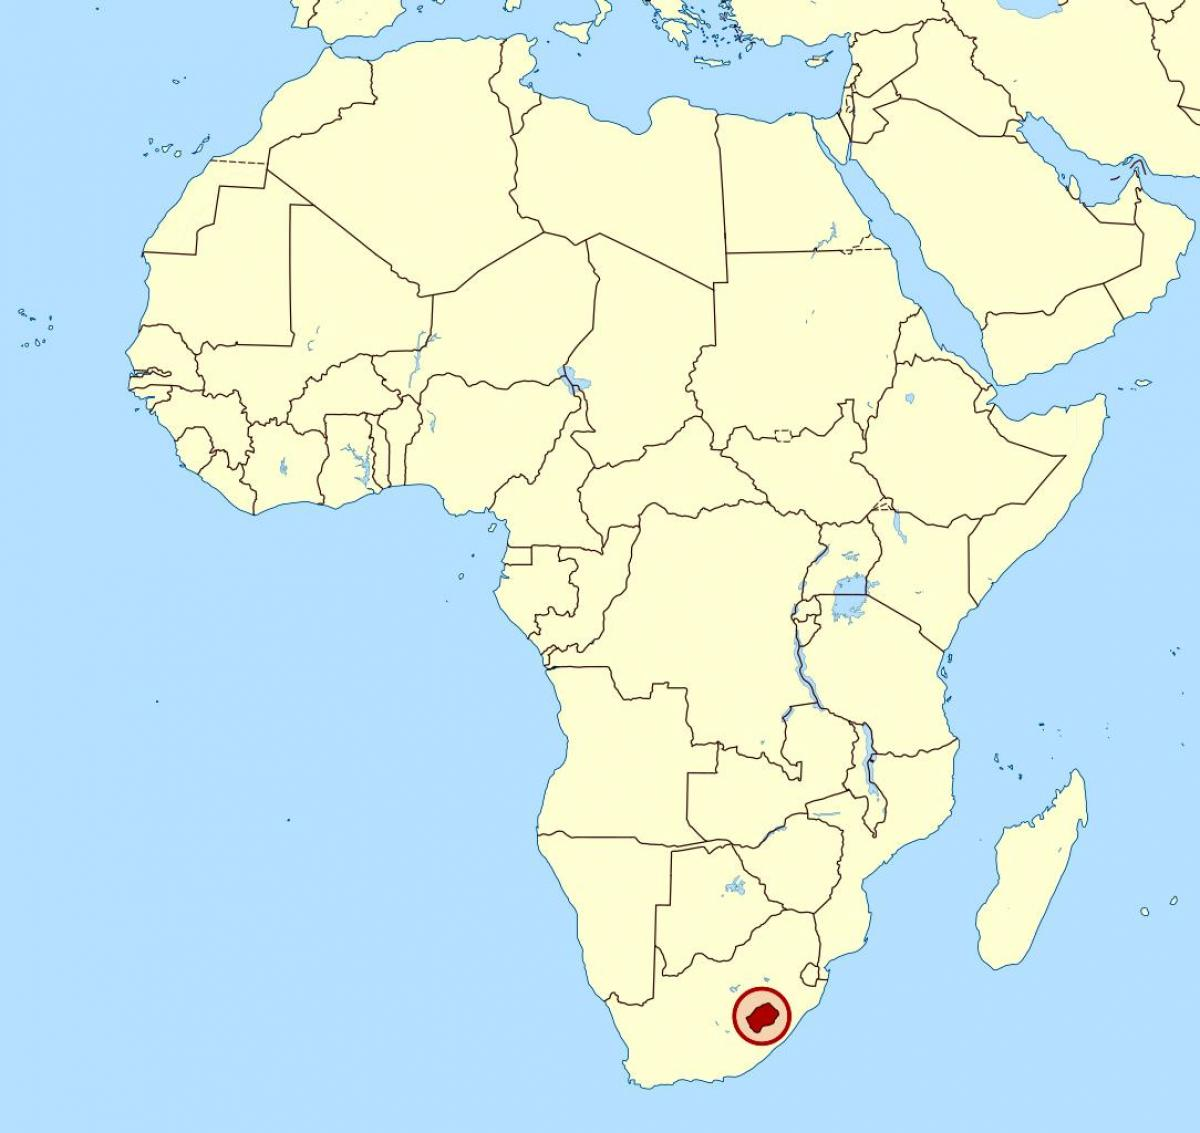 Map Of South Africa And Lesotho.Lesotho On World Map Map Of Lesotho On World Southern Africa